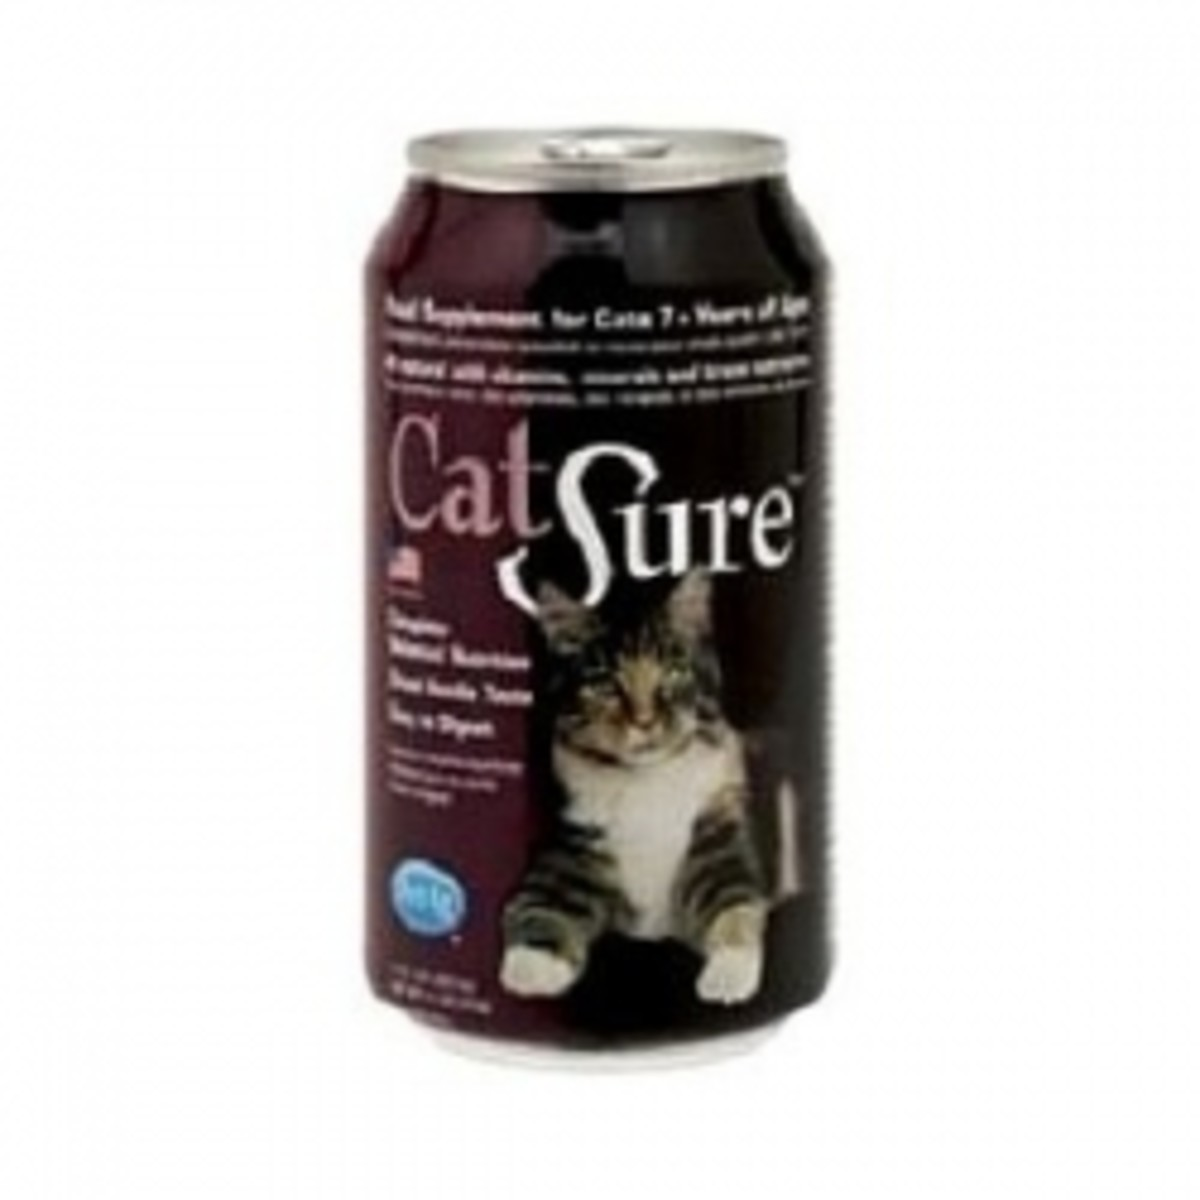 A Review of Cat Sure: Nutrition Supplement for Cats